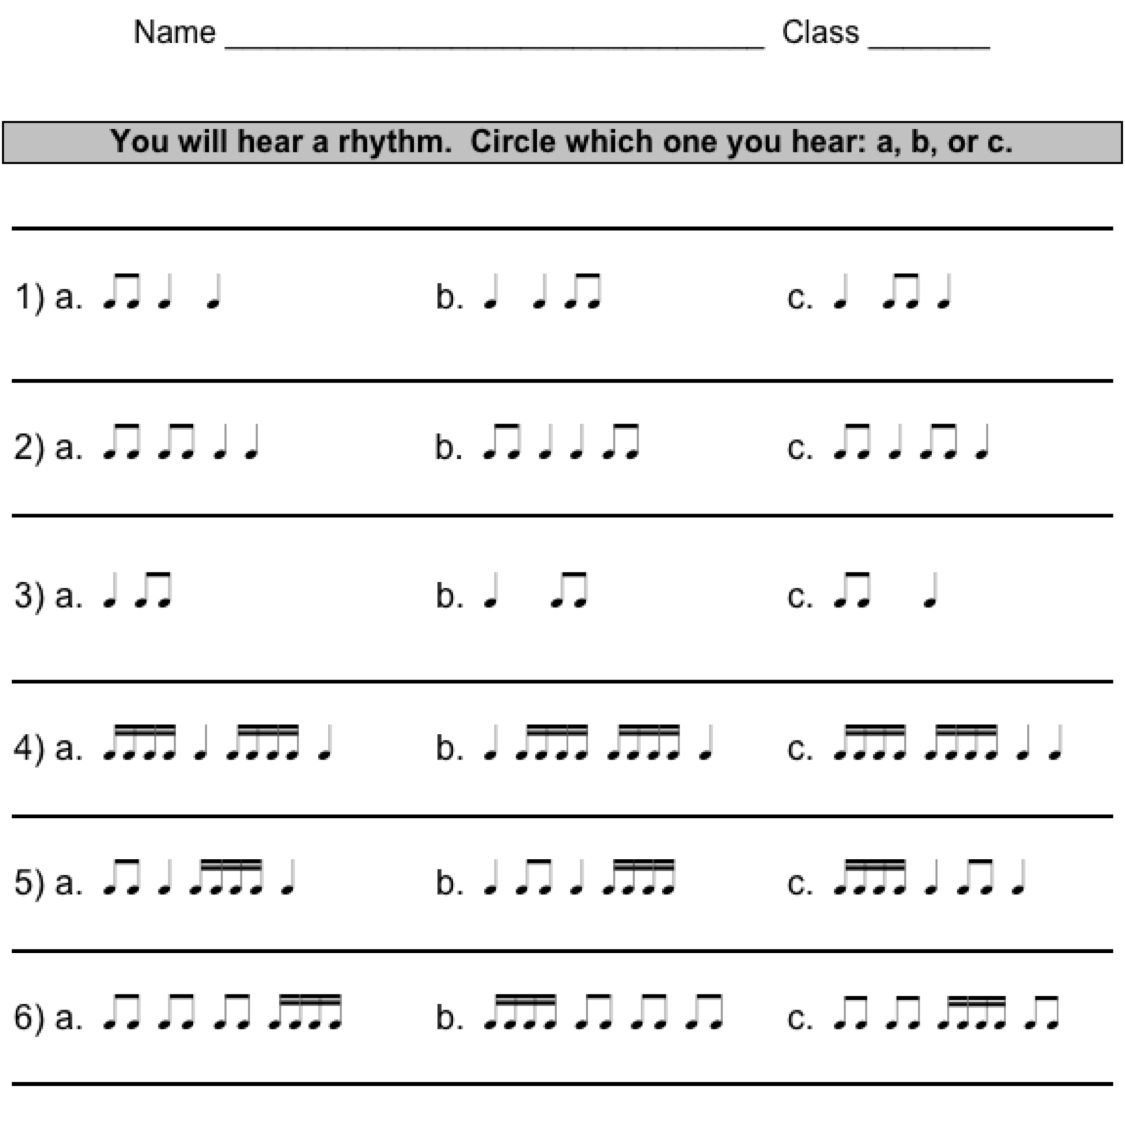 Worksheets Rhythm Math Worksheets pdf rhythm practice students write 3 or 4 in each blank to blank